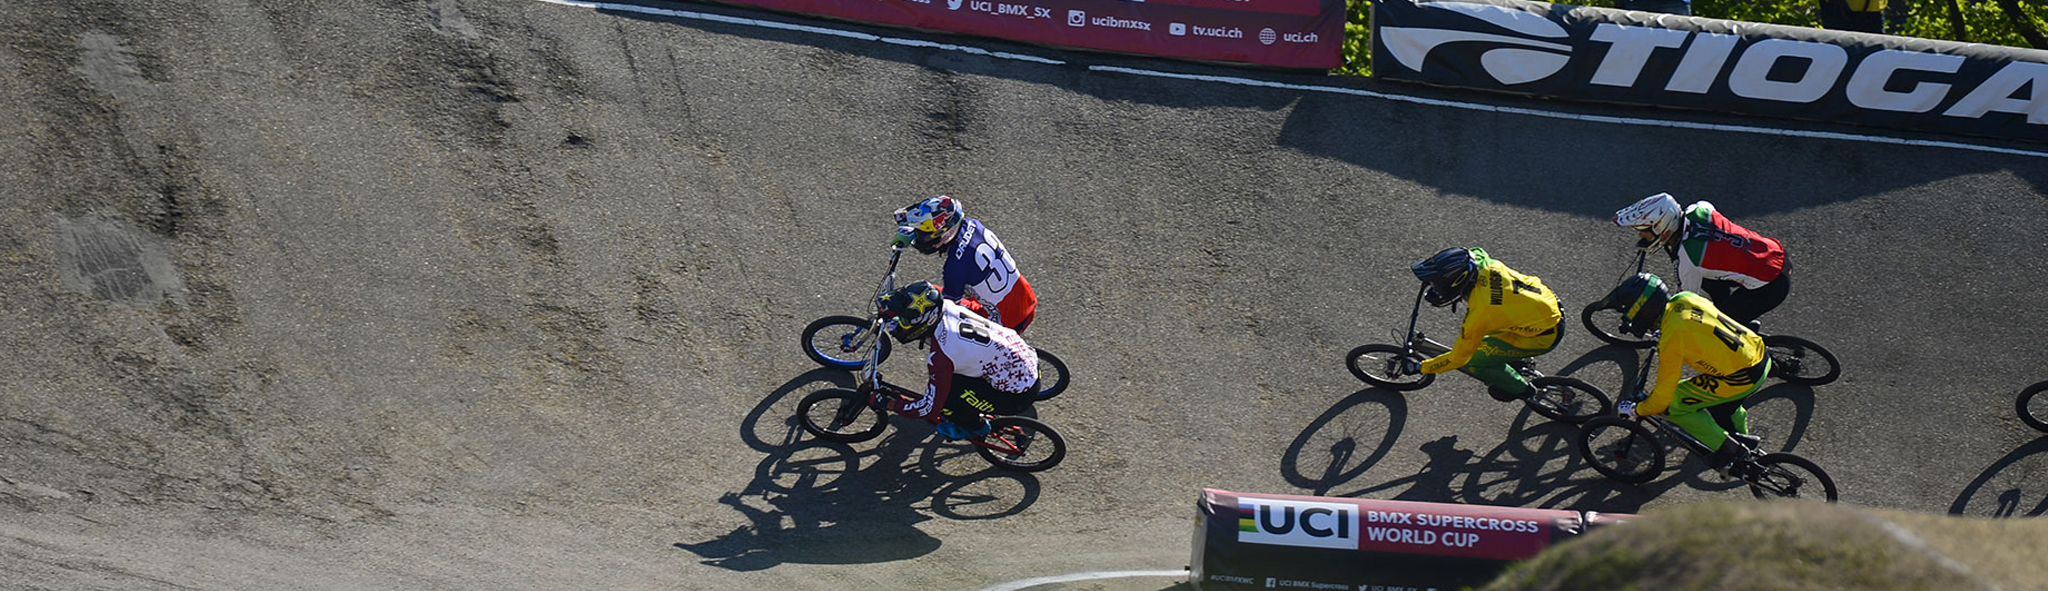 Chase BMX Race Report – UCI BMX Supercross World Cup – Papendal, The Netherlands